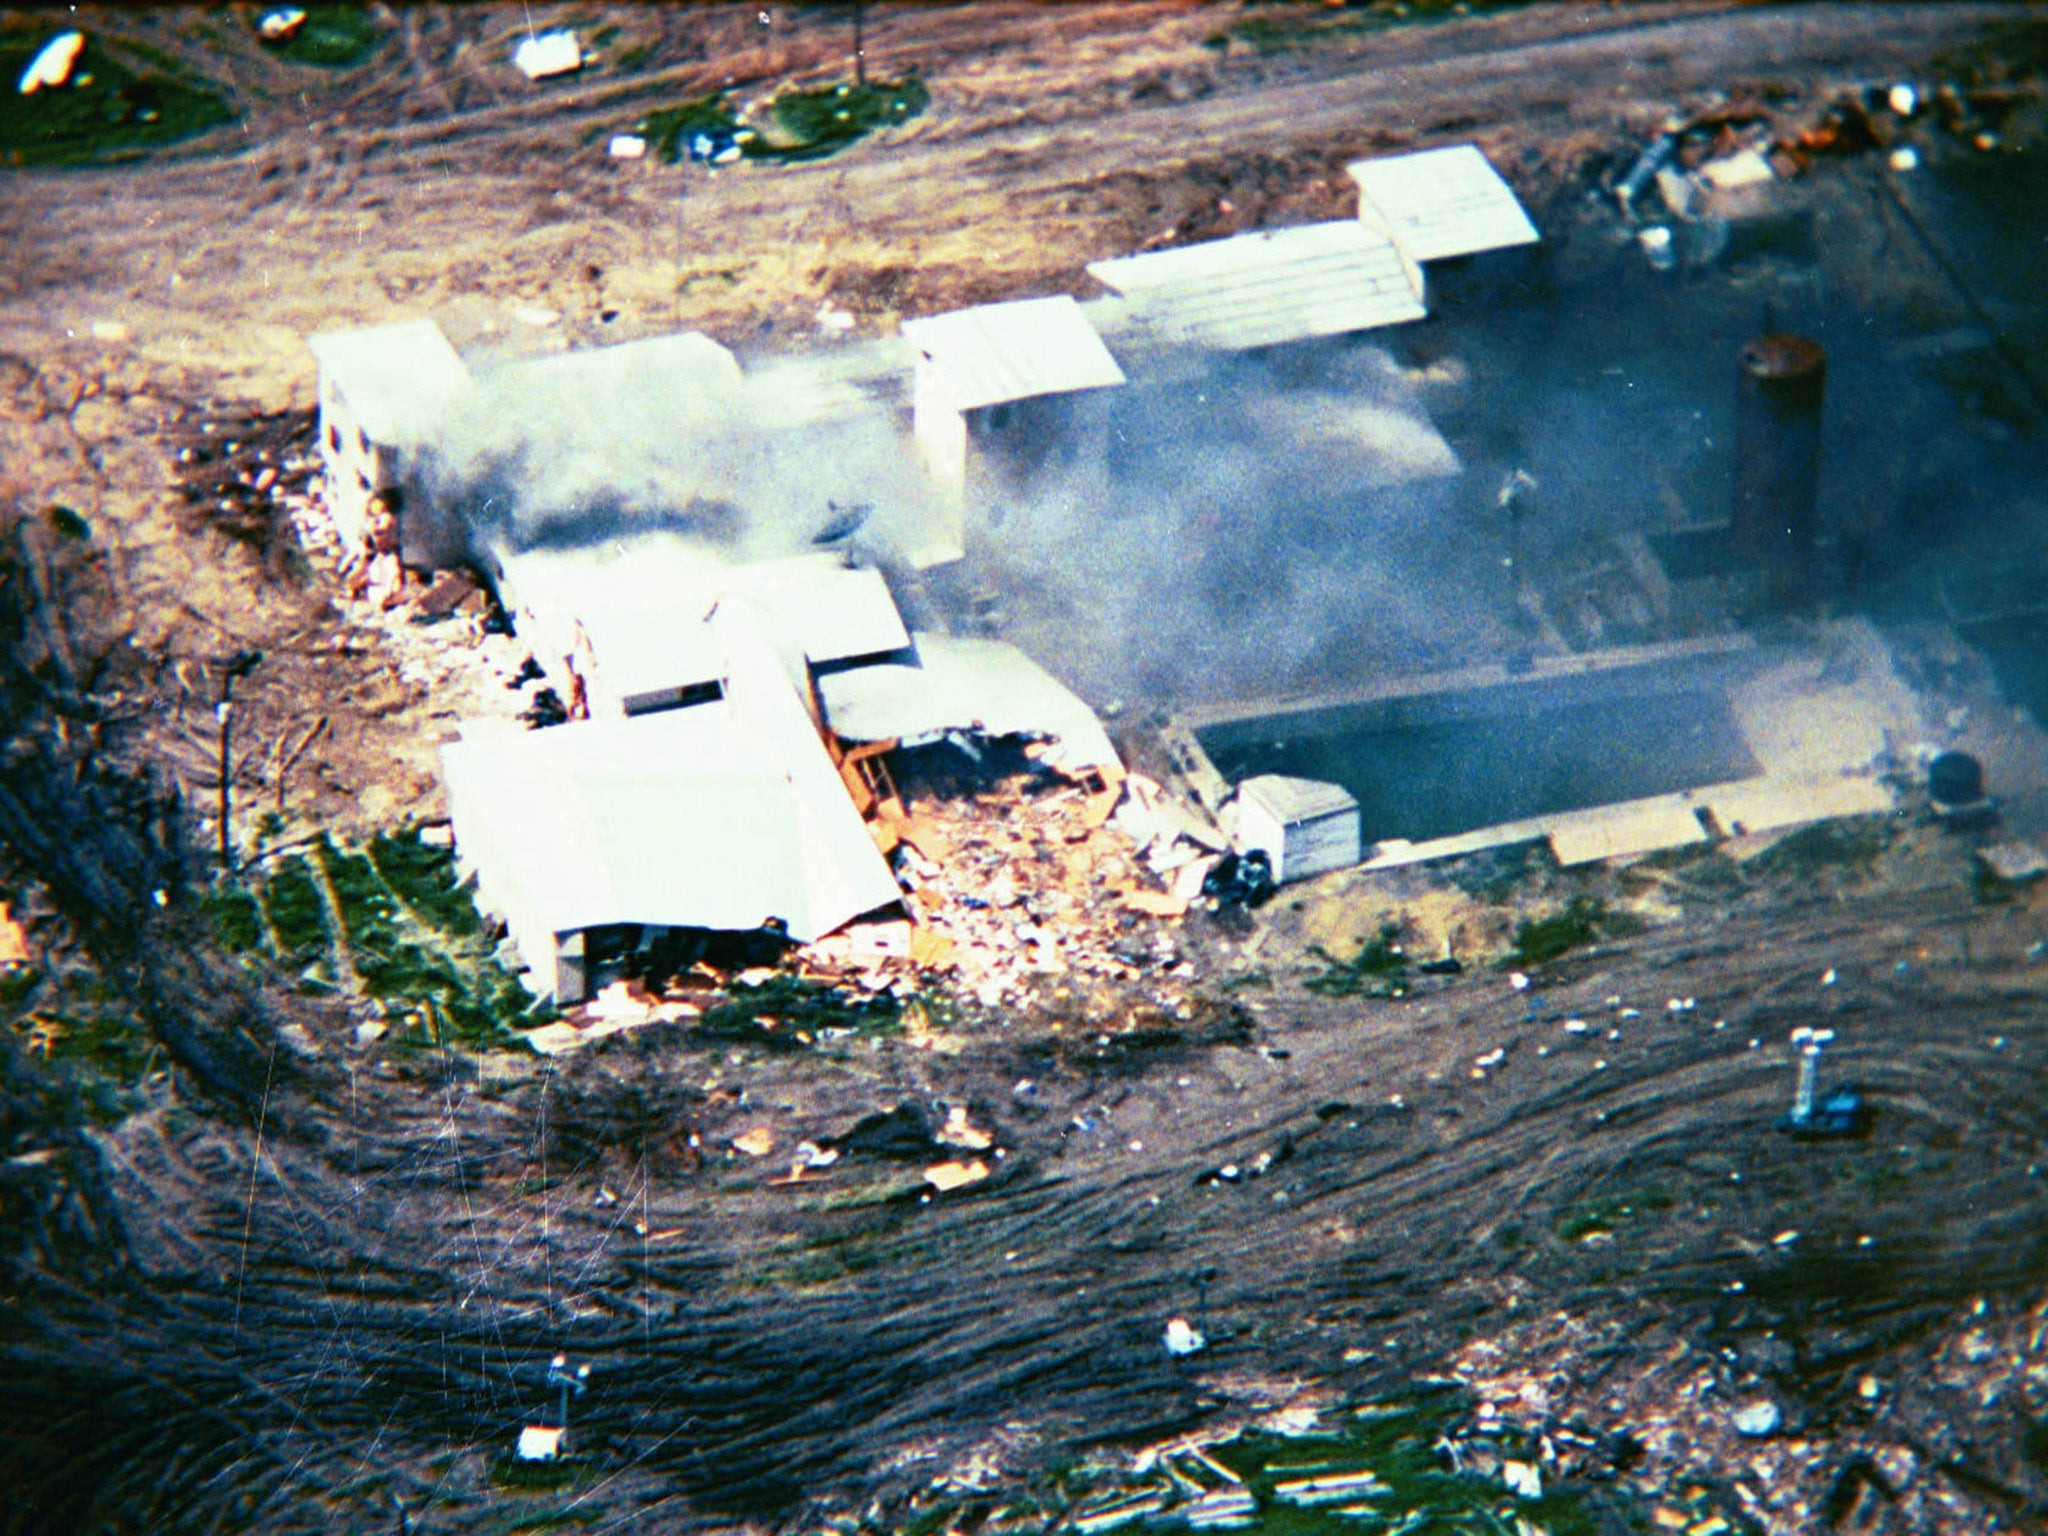 Waco: How a 51-day standoff between a Christian cult and the